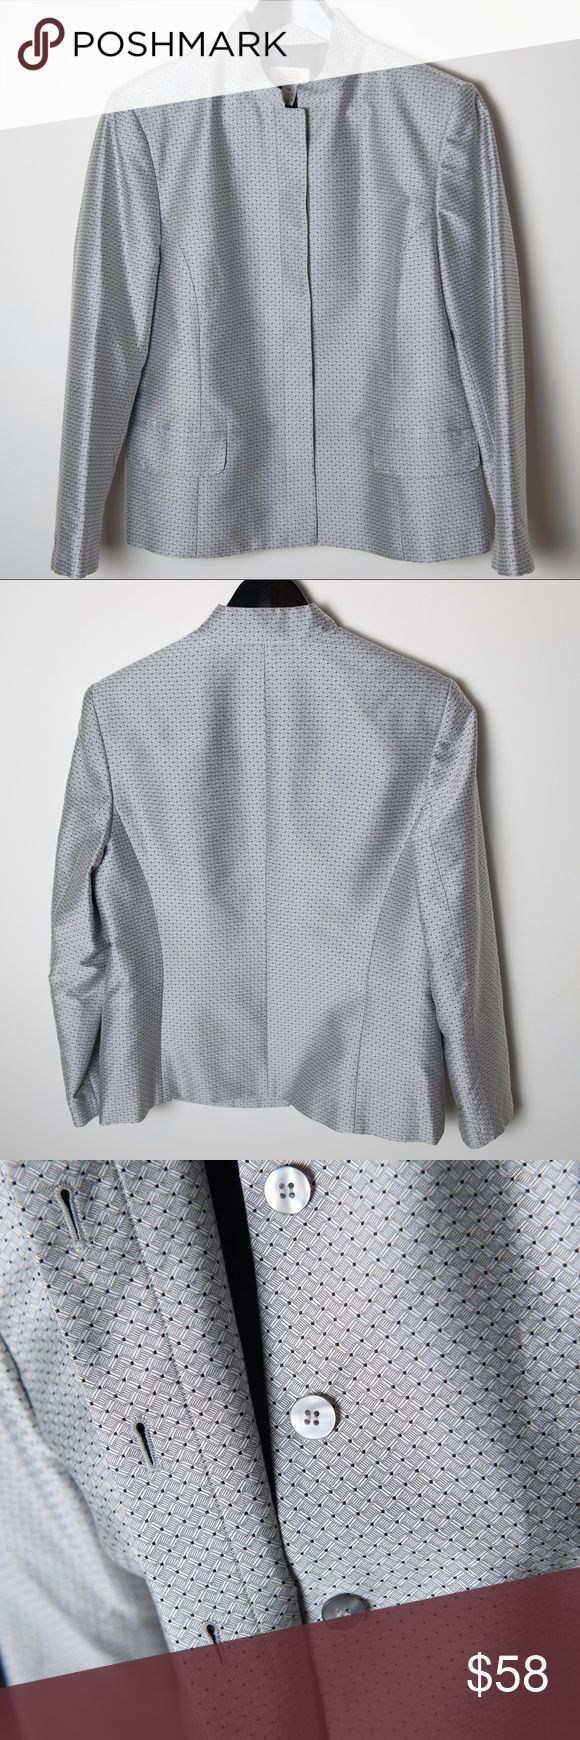 Talbots Mandarin Collar Jacket Silver Black 10 Overall good condition size 10 Talbots blazer in silver with black pattern. Classic Talbots tailoring with a Mandarin style collar, button up front. Shell 70% cotton, 30% silk. Lining - 100% polyester. Dry clean only. Talbots Jackets & Coats Blazers